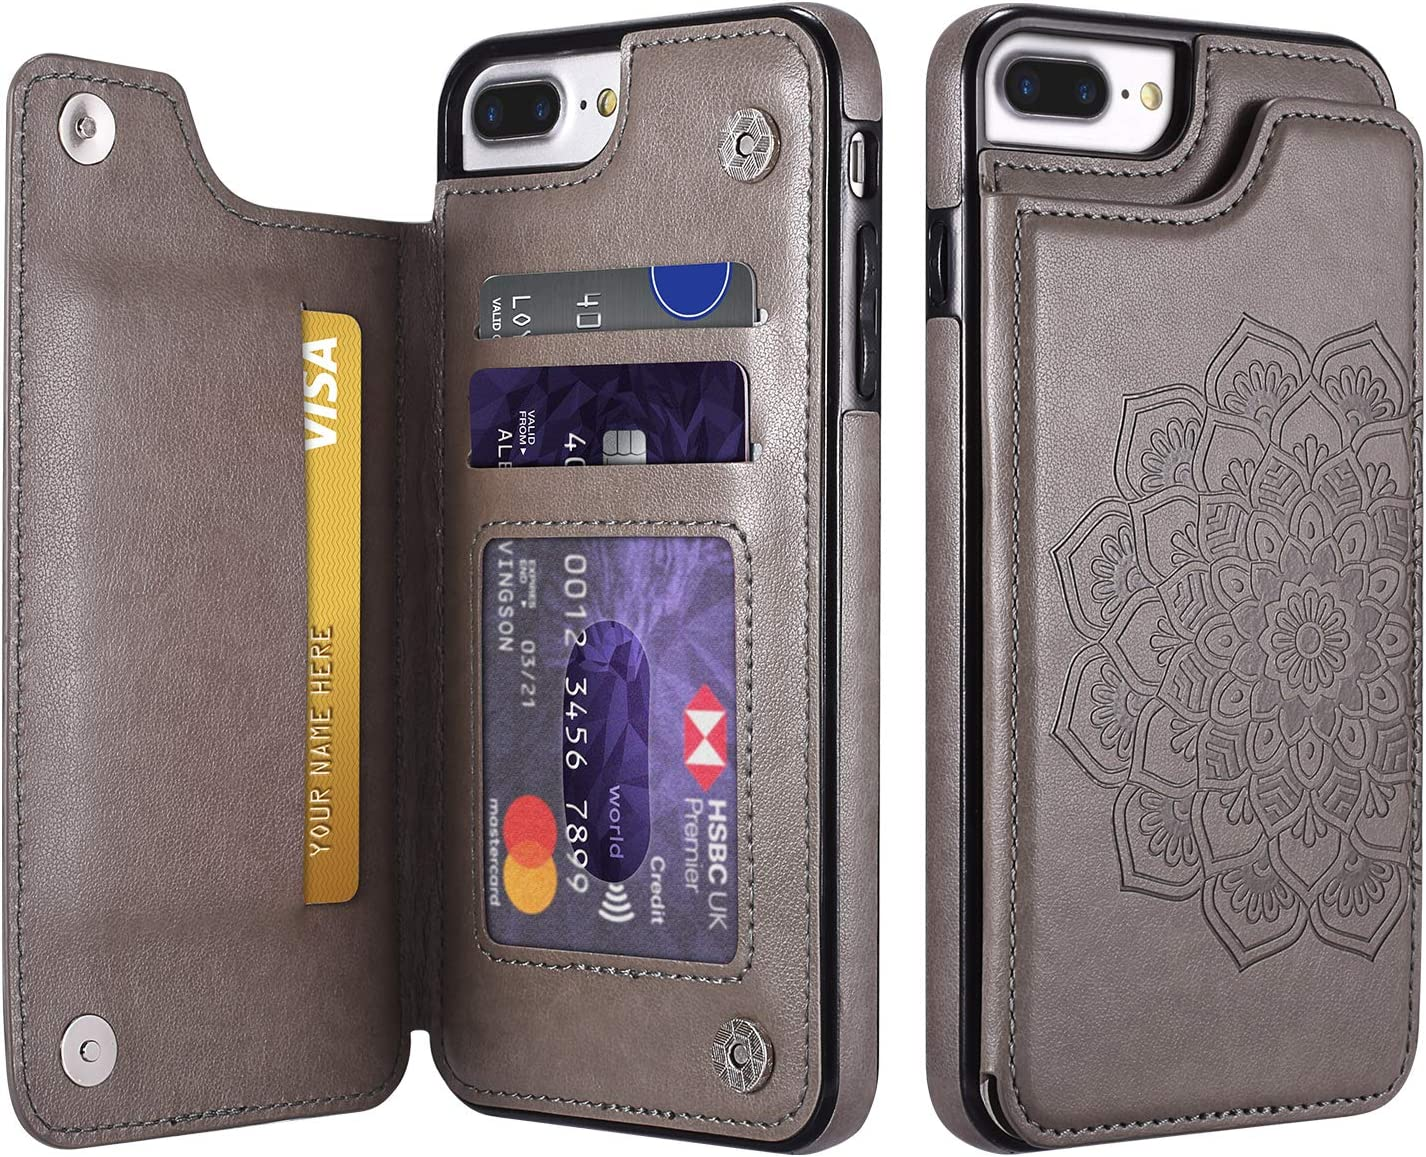 UEEBAI Case for iPhone SE 2020 iPhone 7 iPhone 8, PU Leather Case [Two Magnetic Clasp] [Card Slots] Stand Function Embossed Mandala Pattern Half Flower Durable Soft TPU Back Wallet Cover - Grey#2